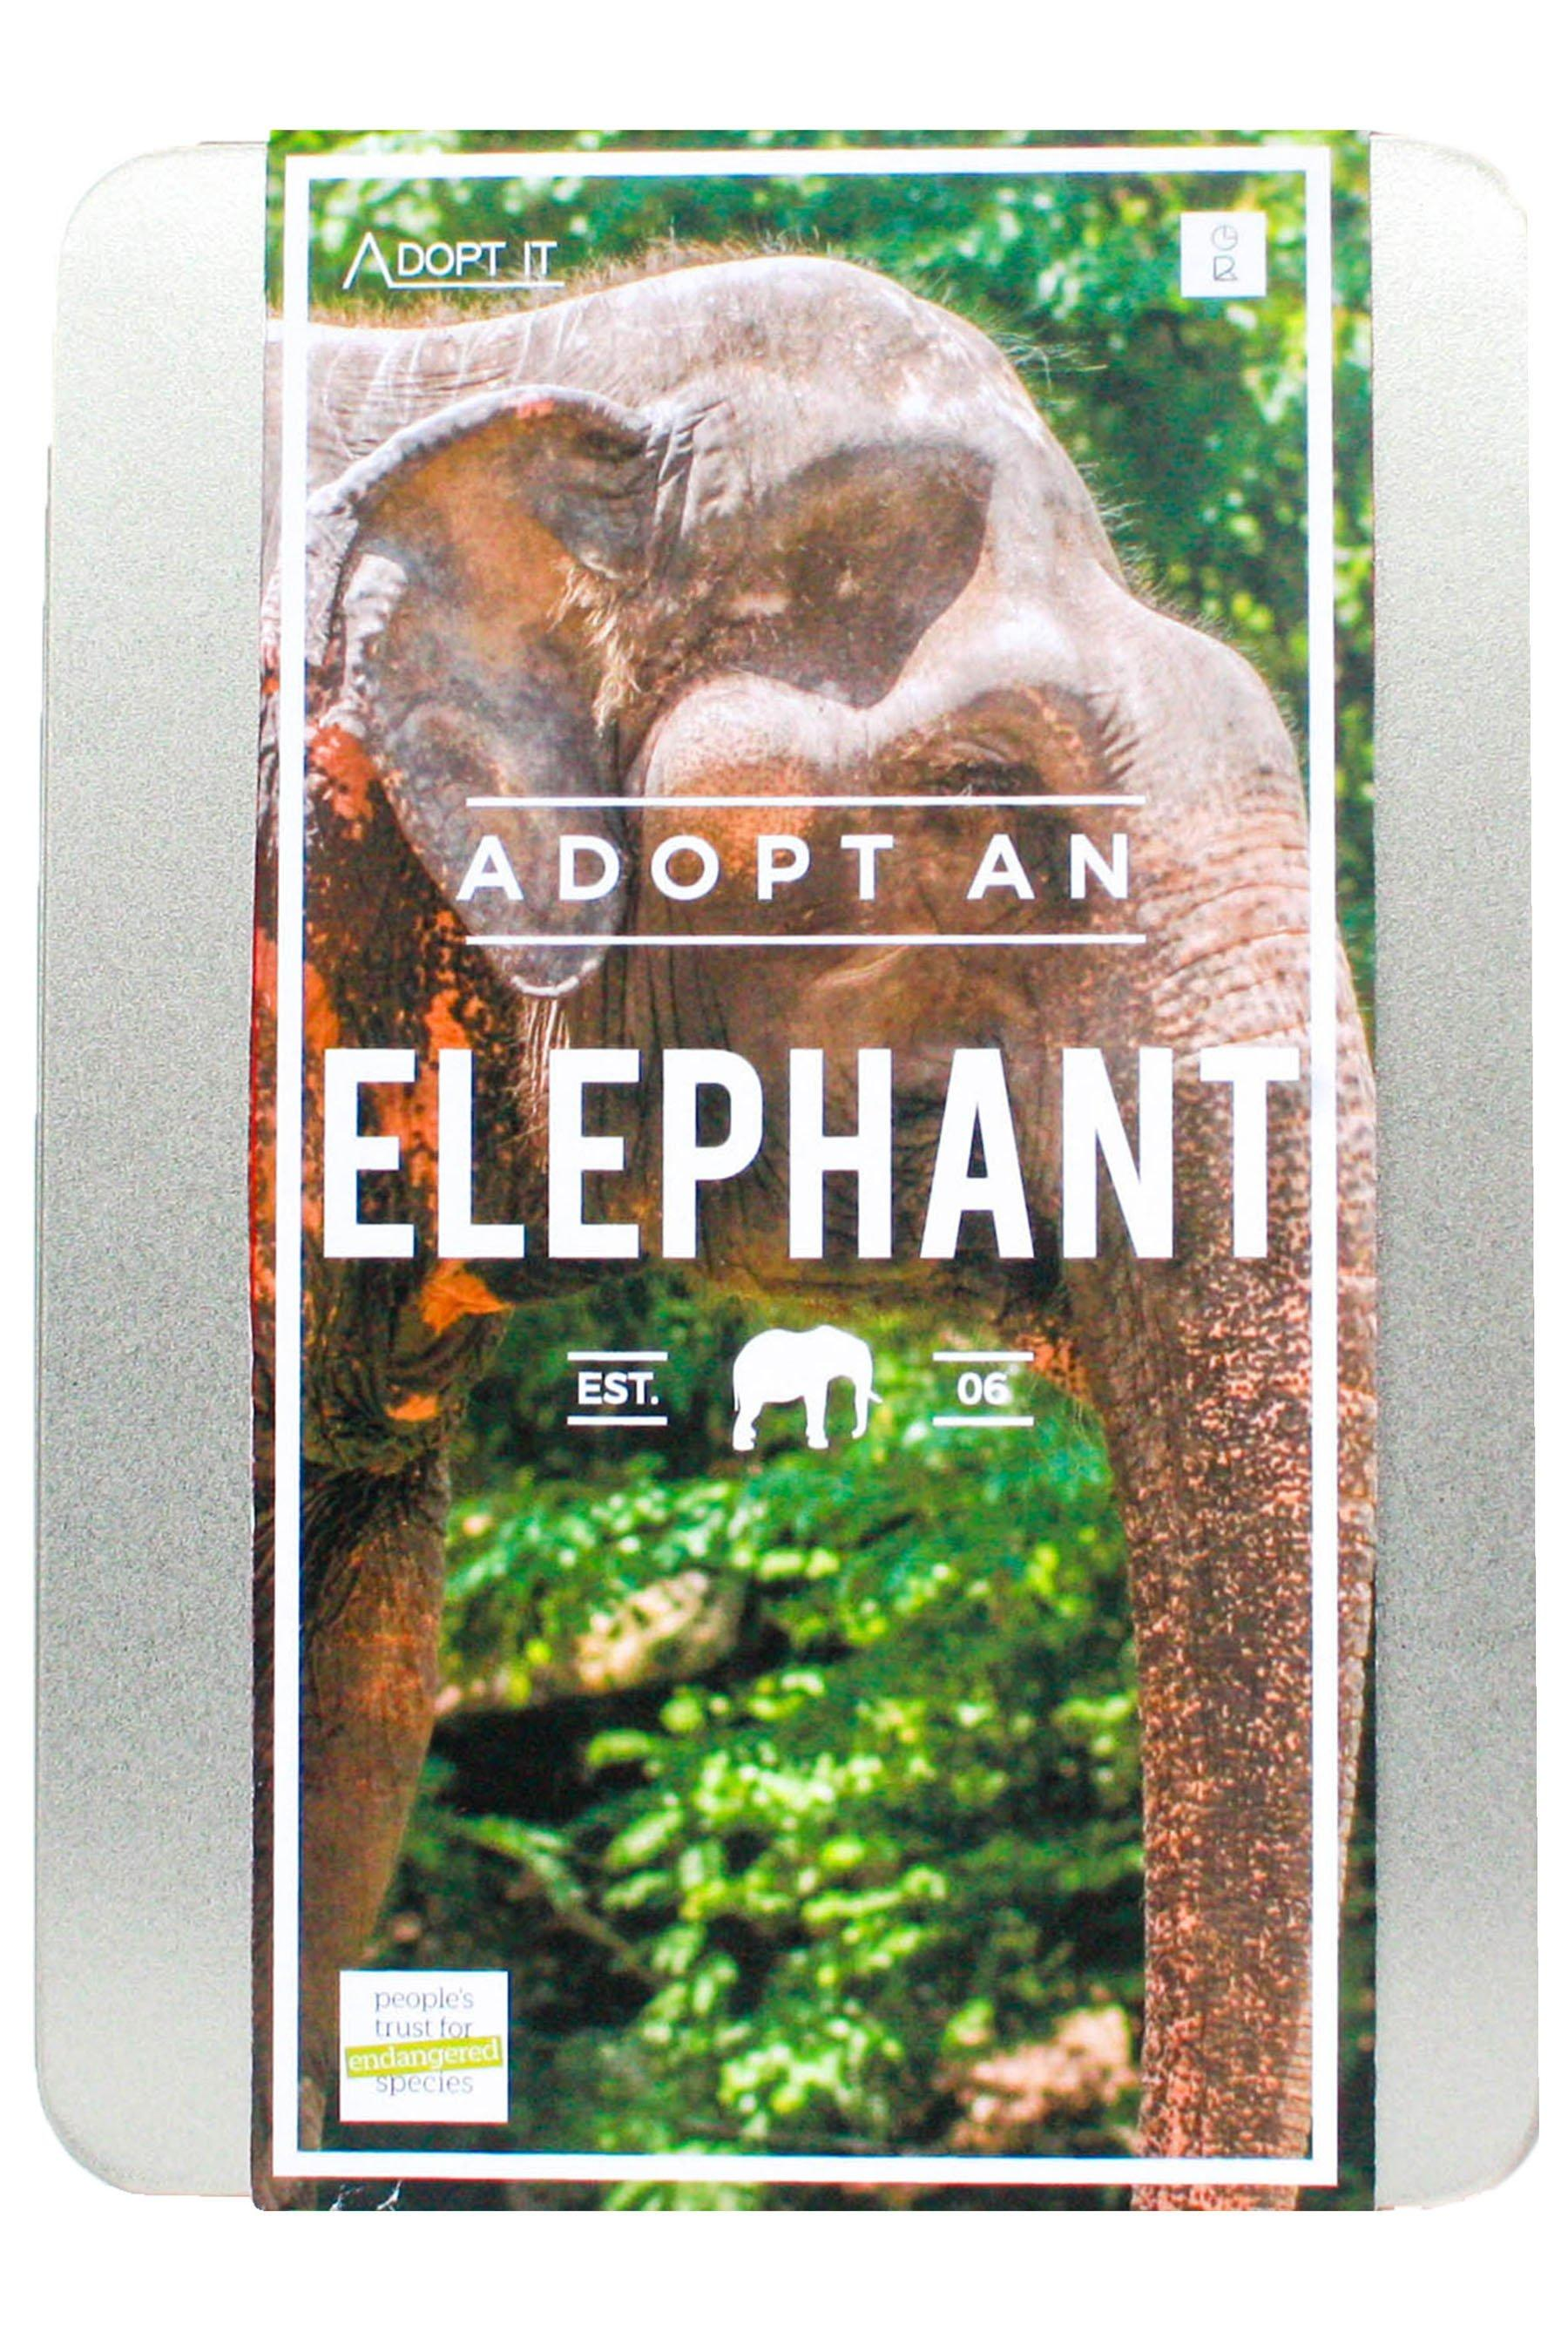 Compare retail prices of Adopt It - Adopt an Elephant to get the best deal online